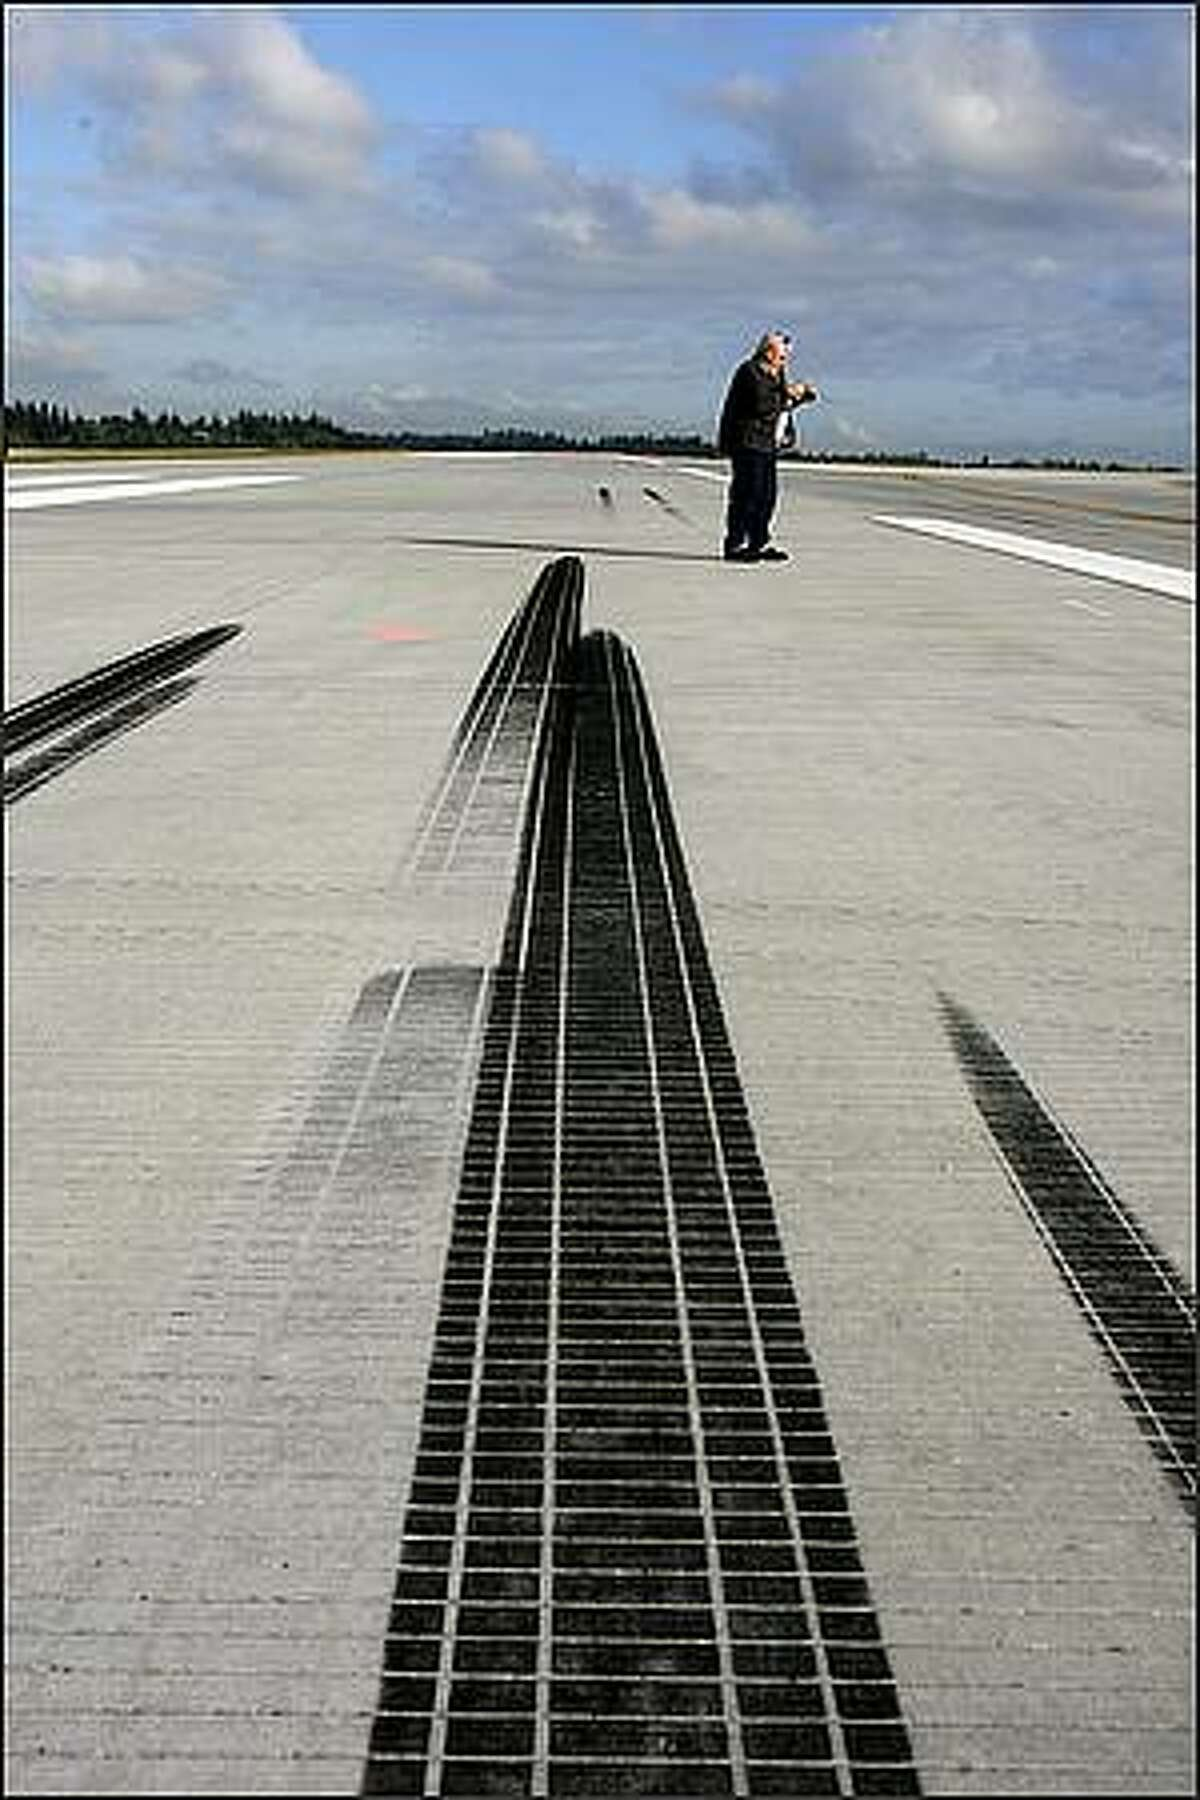 Dennis Franks, an FAA inspector looks over skid marks left by the wheels of a Northwest Airlines A330 wide-body after it performed a touch and go landing on October 8, 2008.